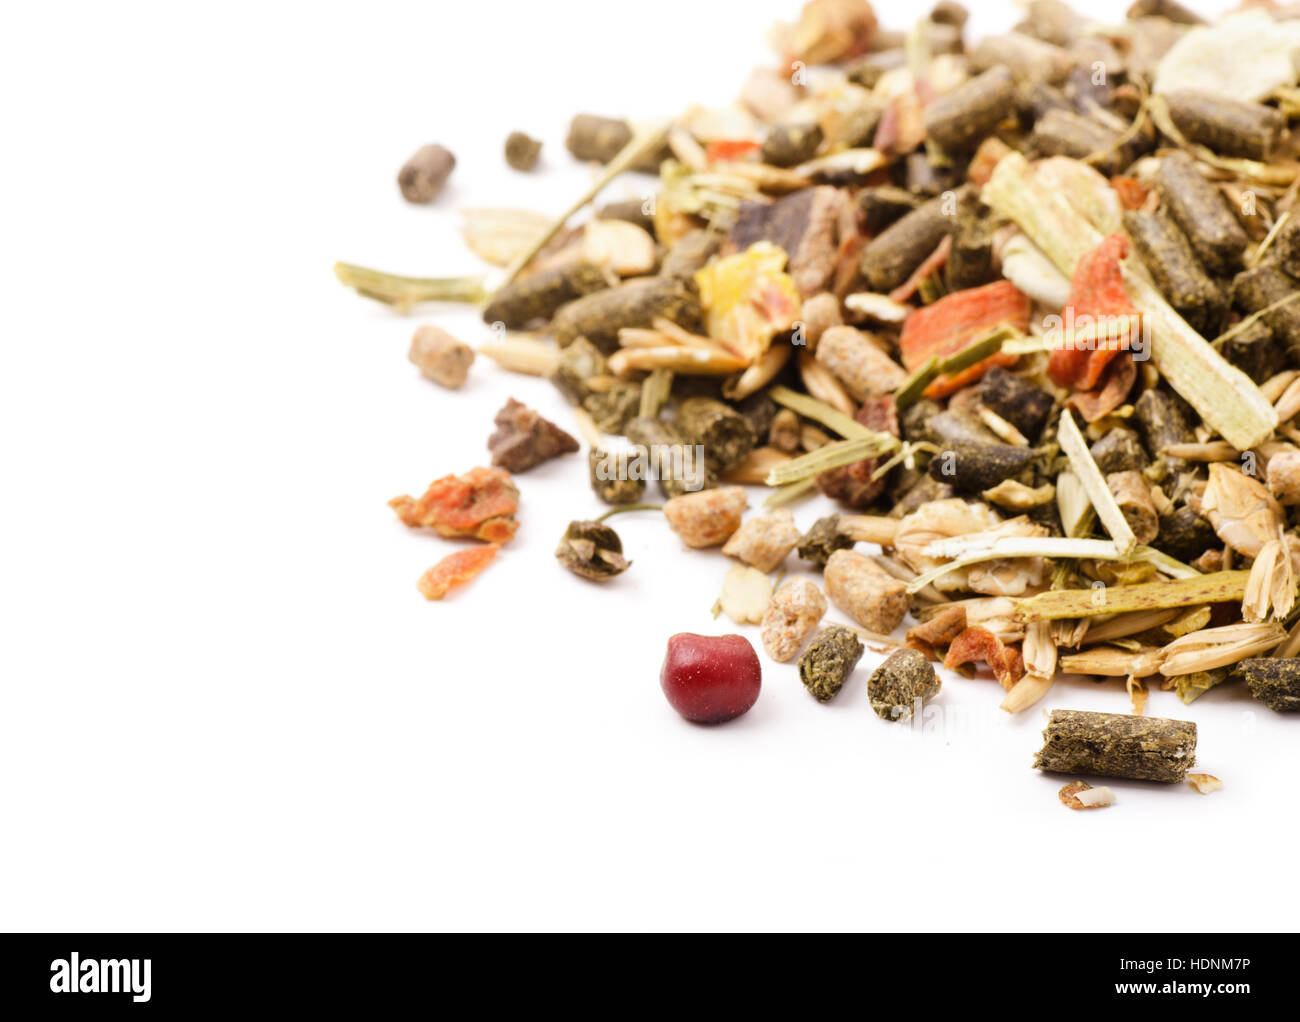 Close-up rodents food mix isolated on a white background - Stock Image